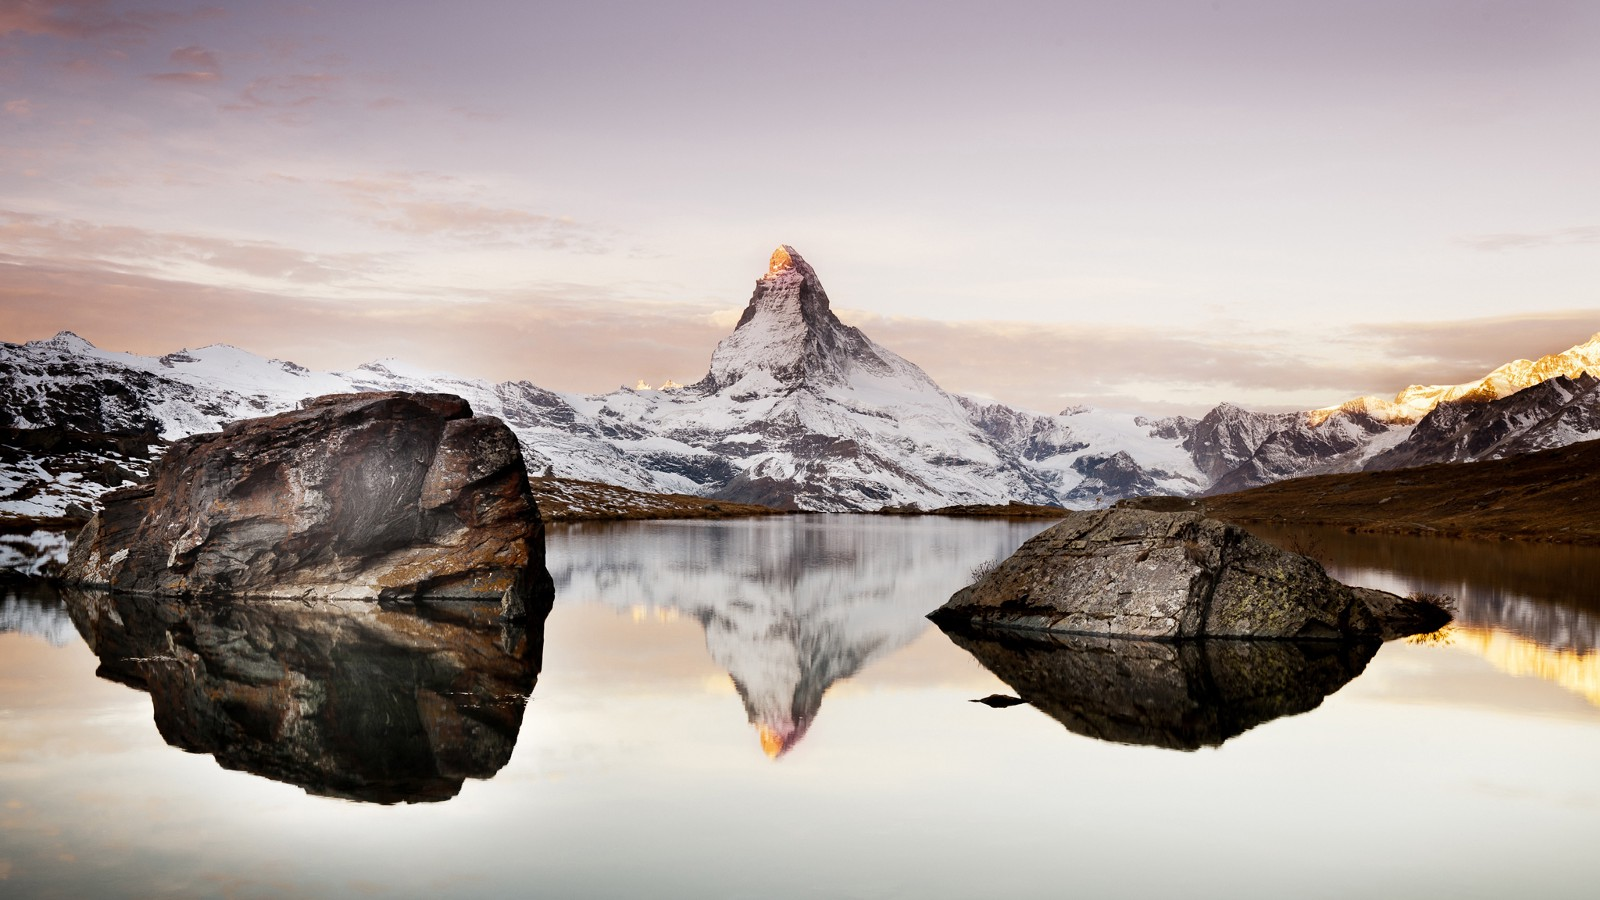 Stellisee Lake in Zermatt, Switzerland